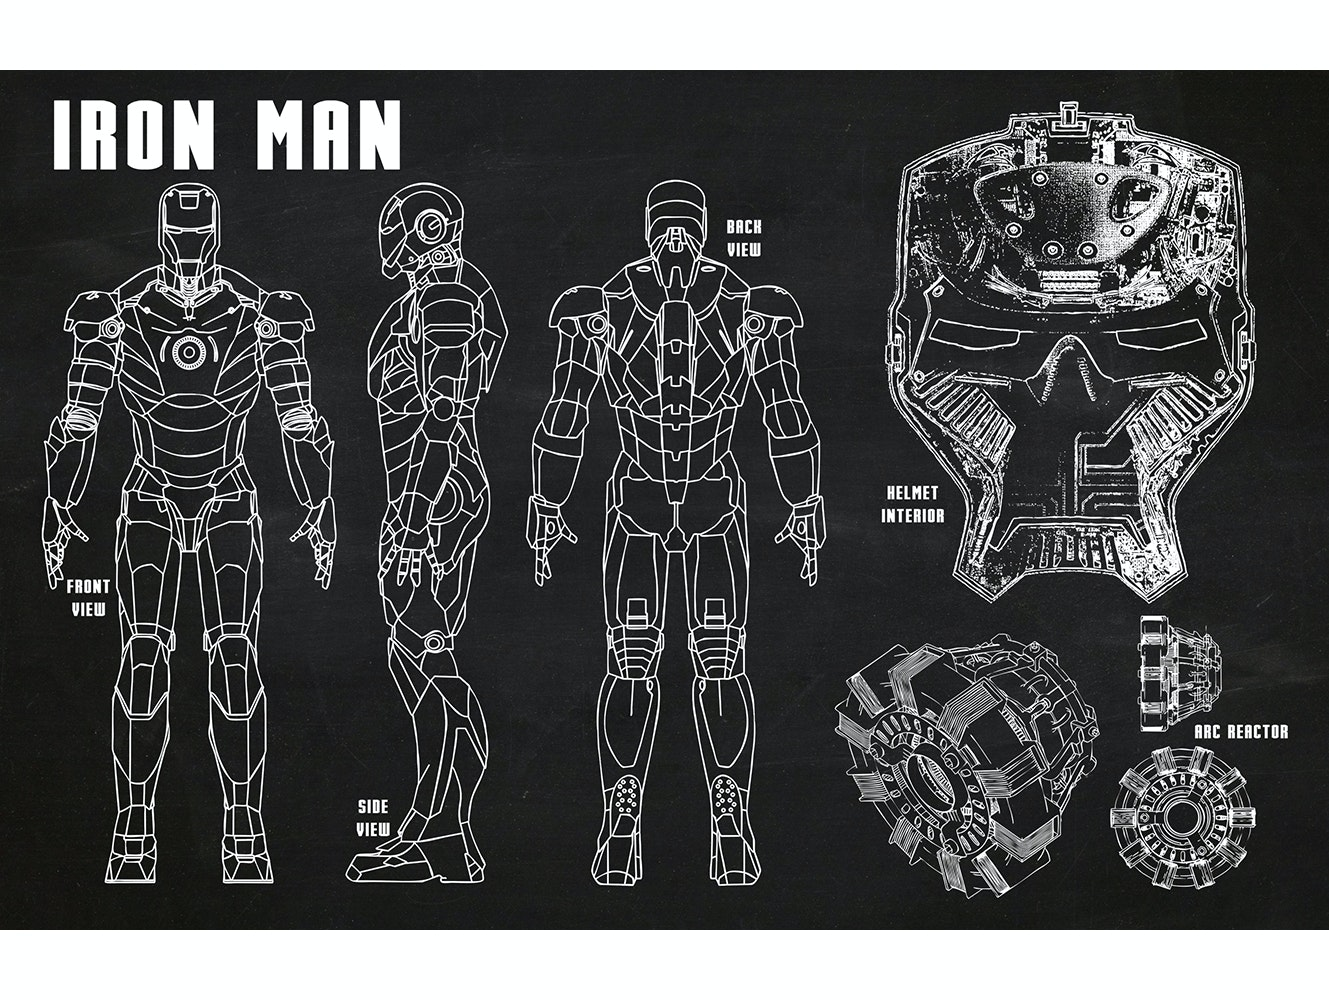 Iron Man - Suit design